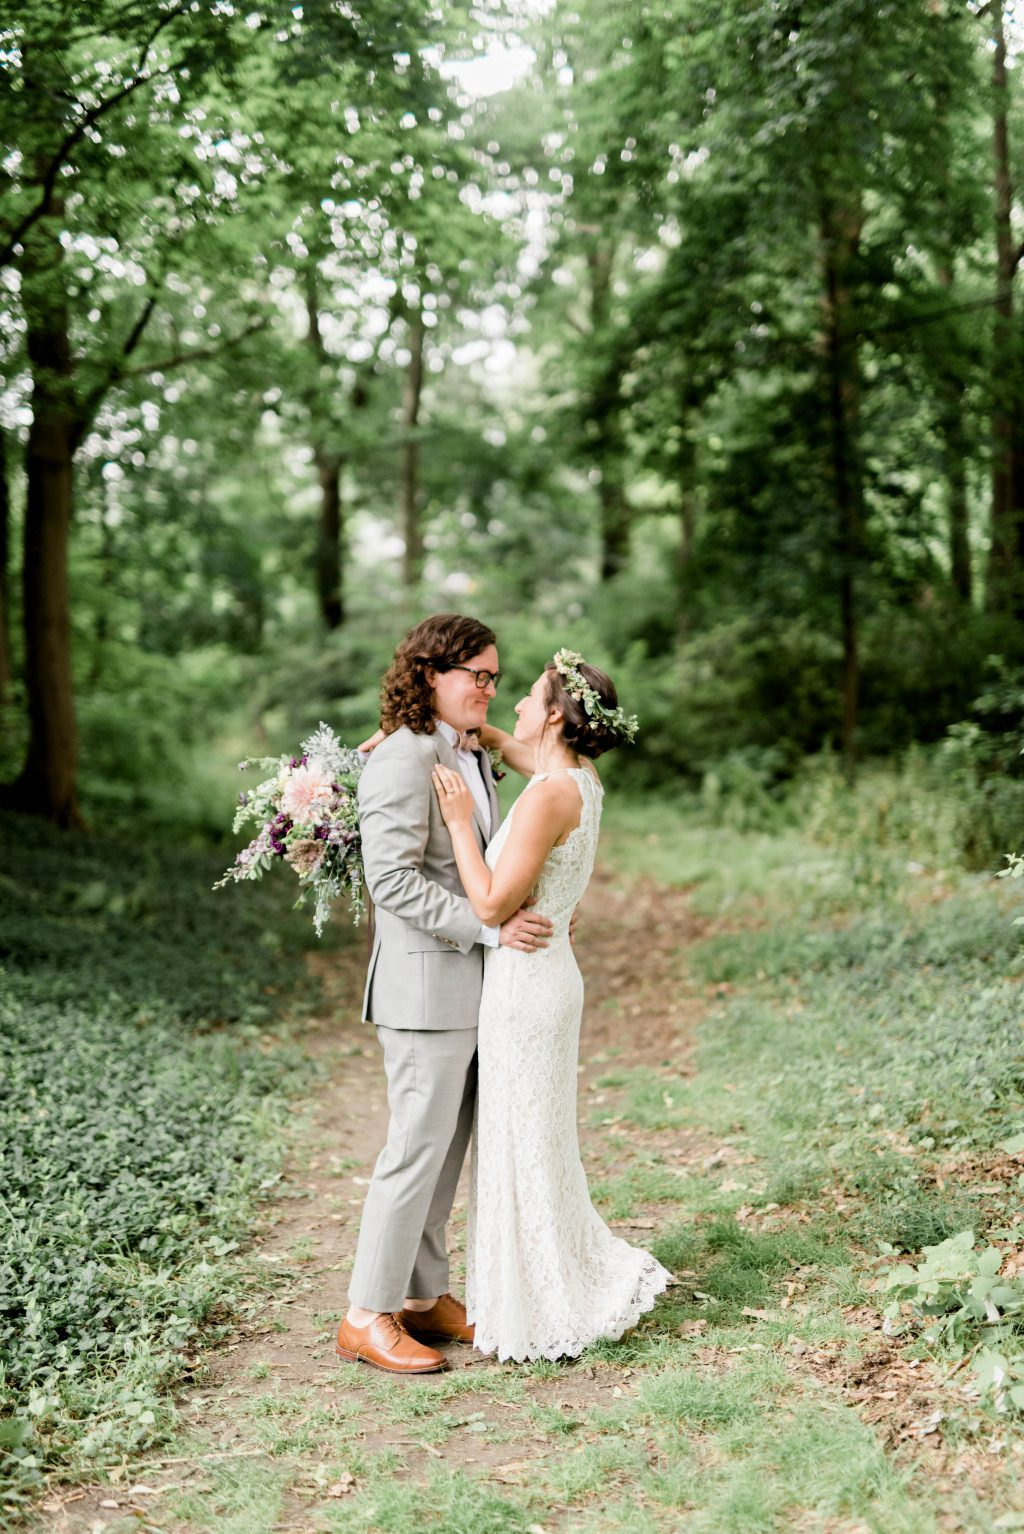 awbury-arboretum-wedding-DIY-boho-summer-haley-richter-photography-075